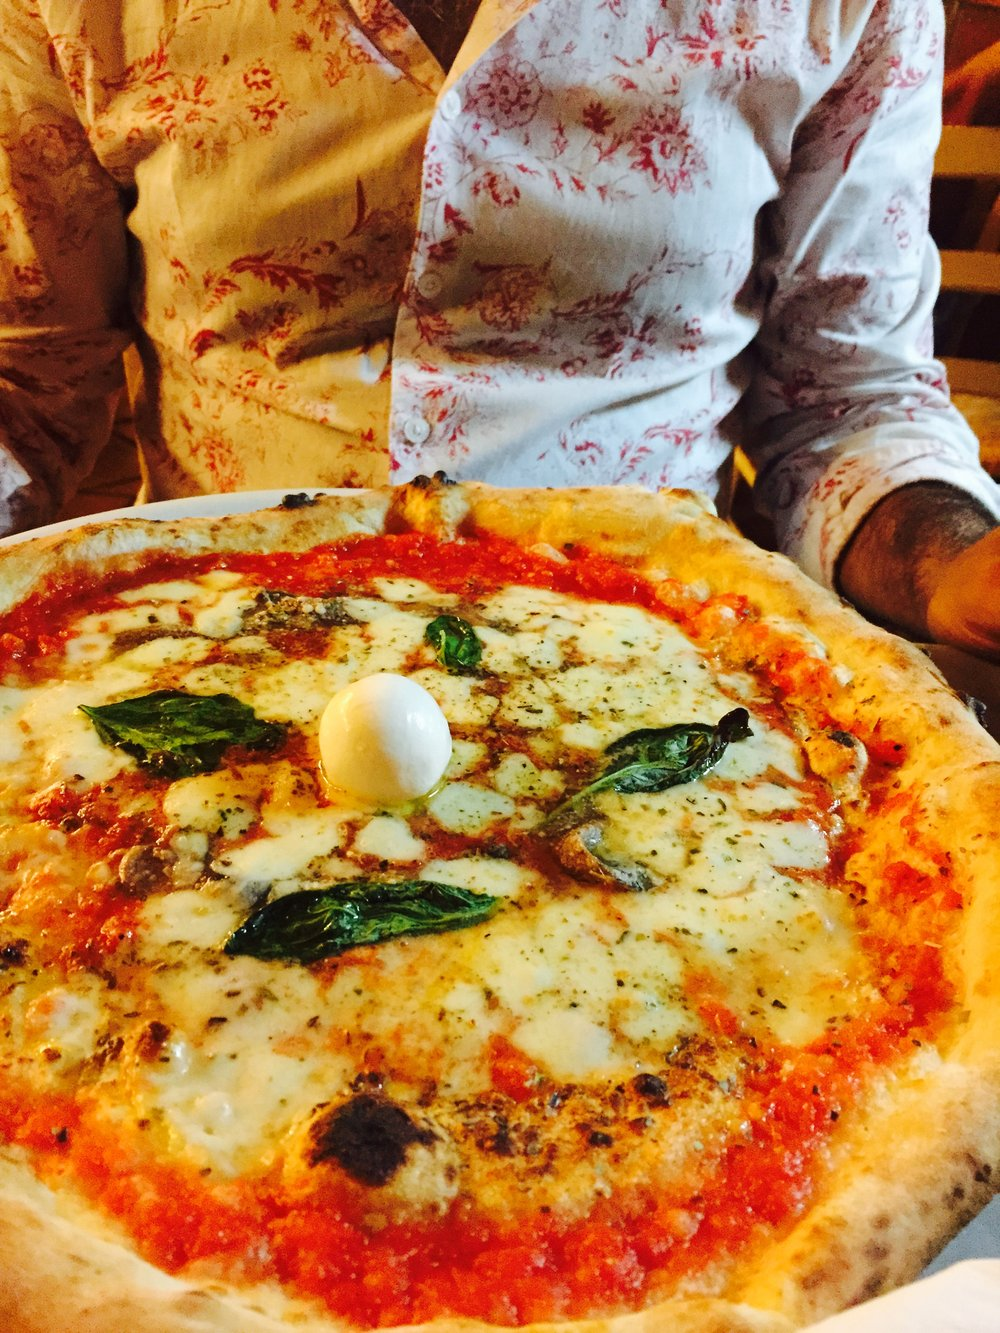 Margarita Pizza with Mozzarella di Bufala at Pizzeria I Decumani in Naples, Italy Photo: Danielle Rehfeld